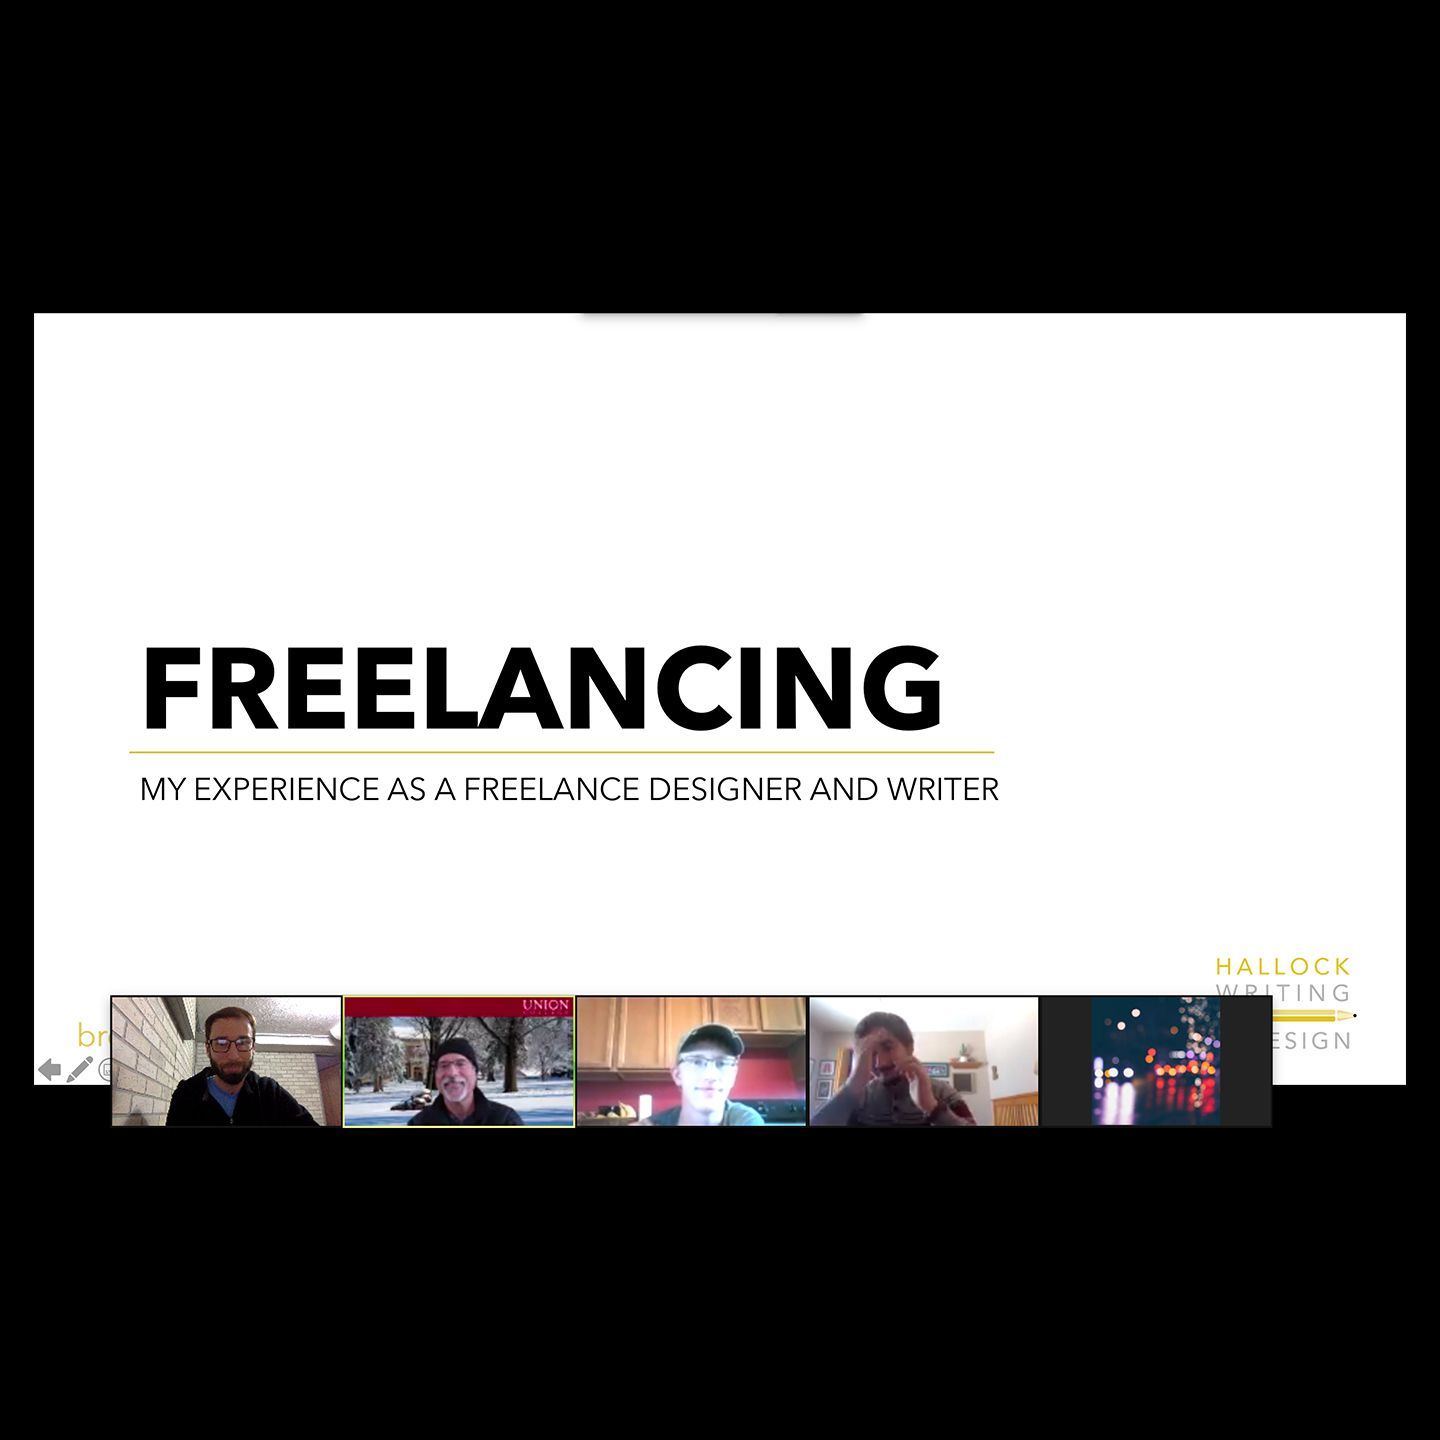 A Few Tips for Future Freelancers